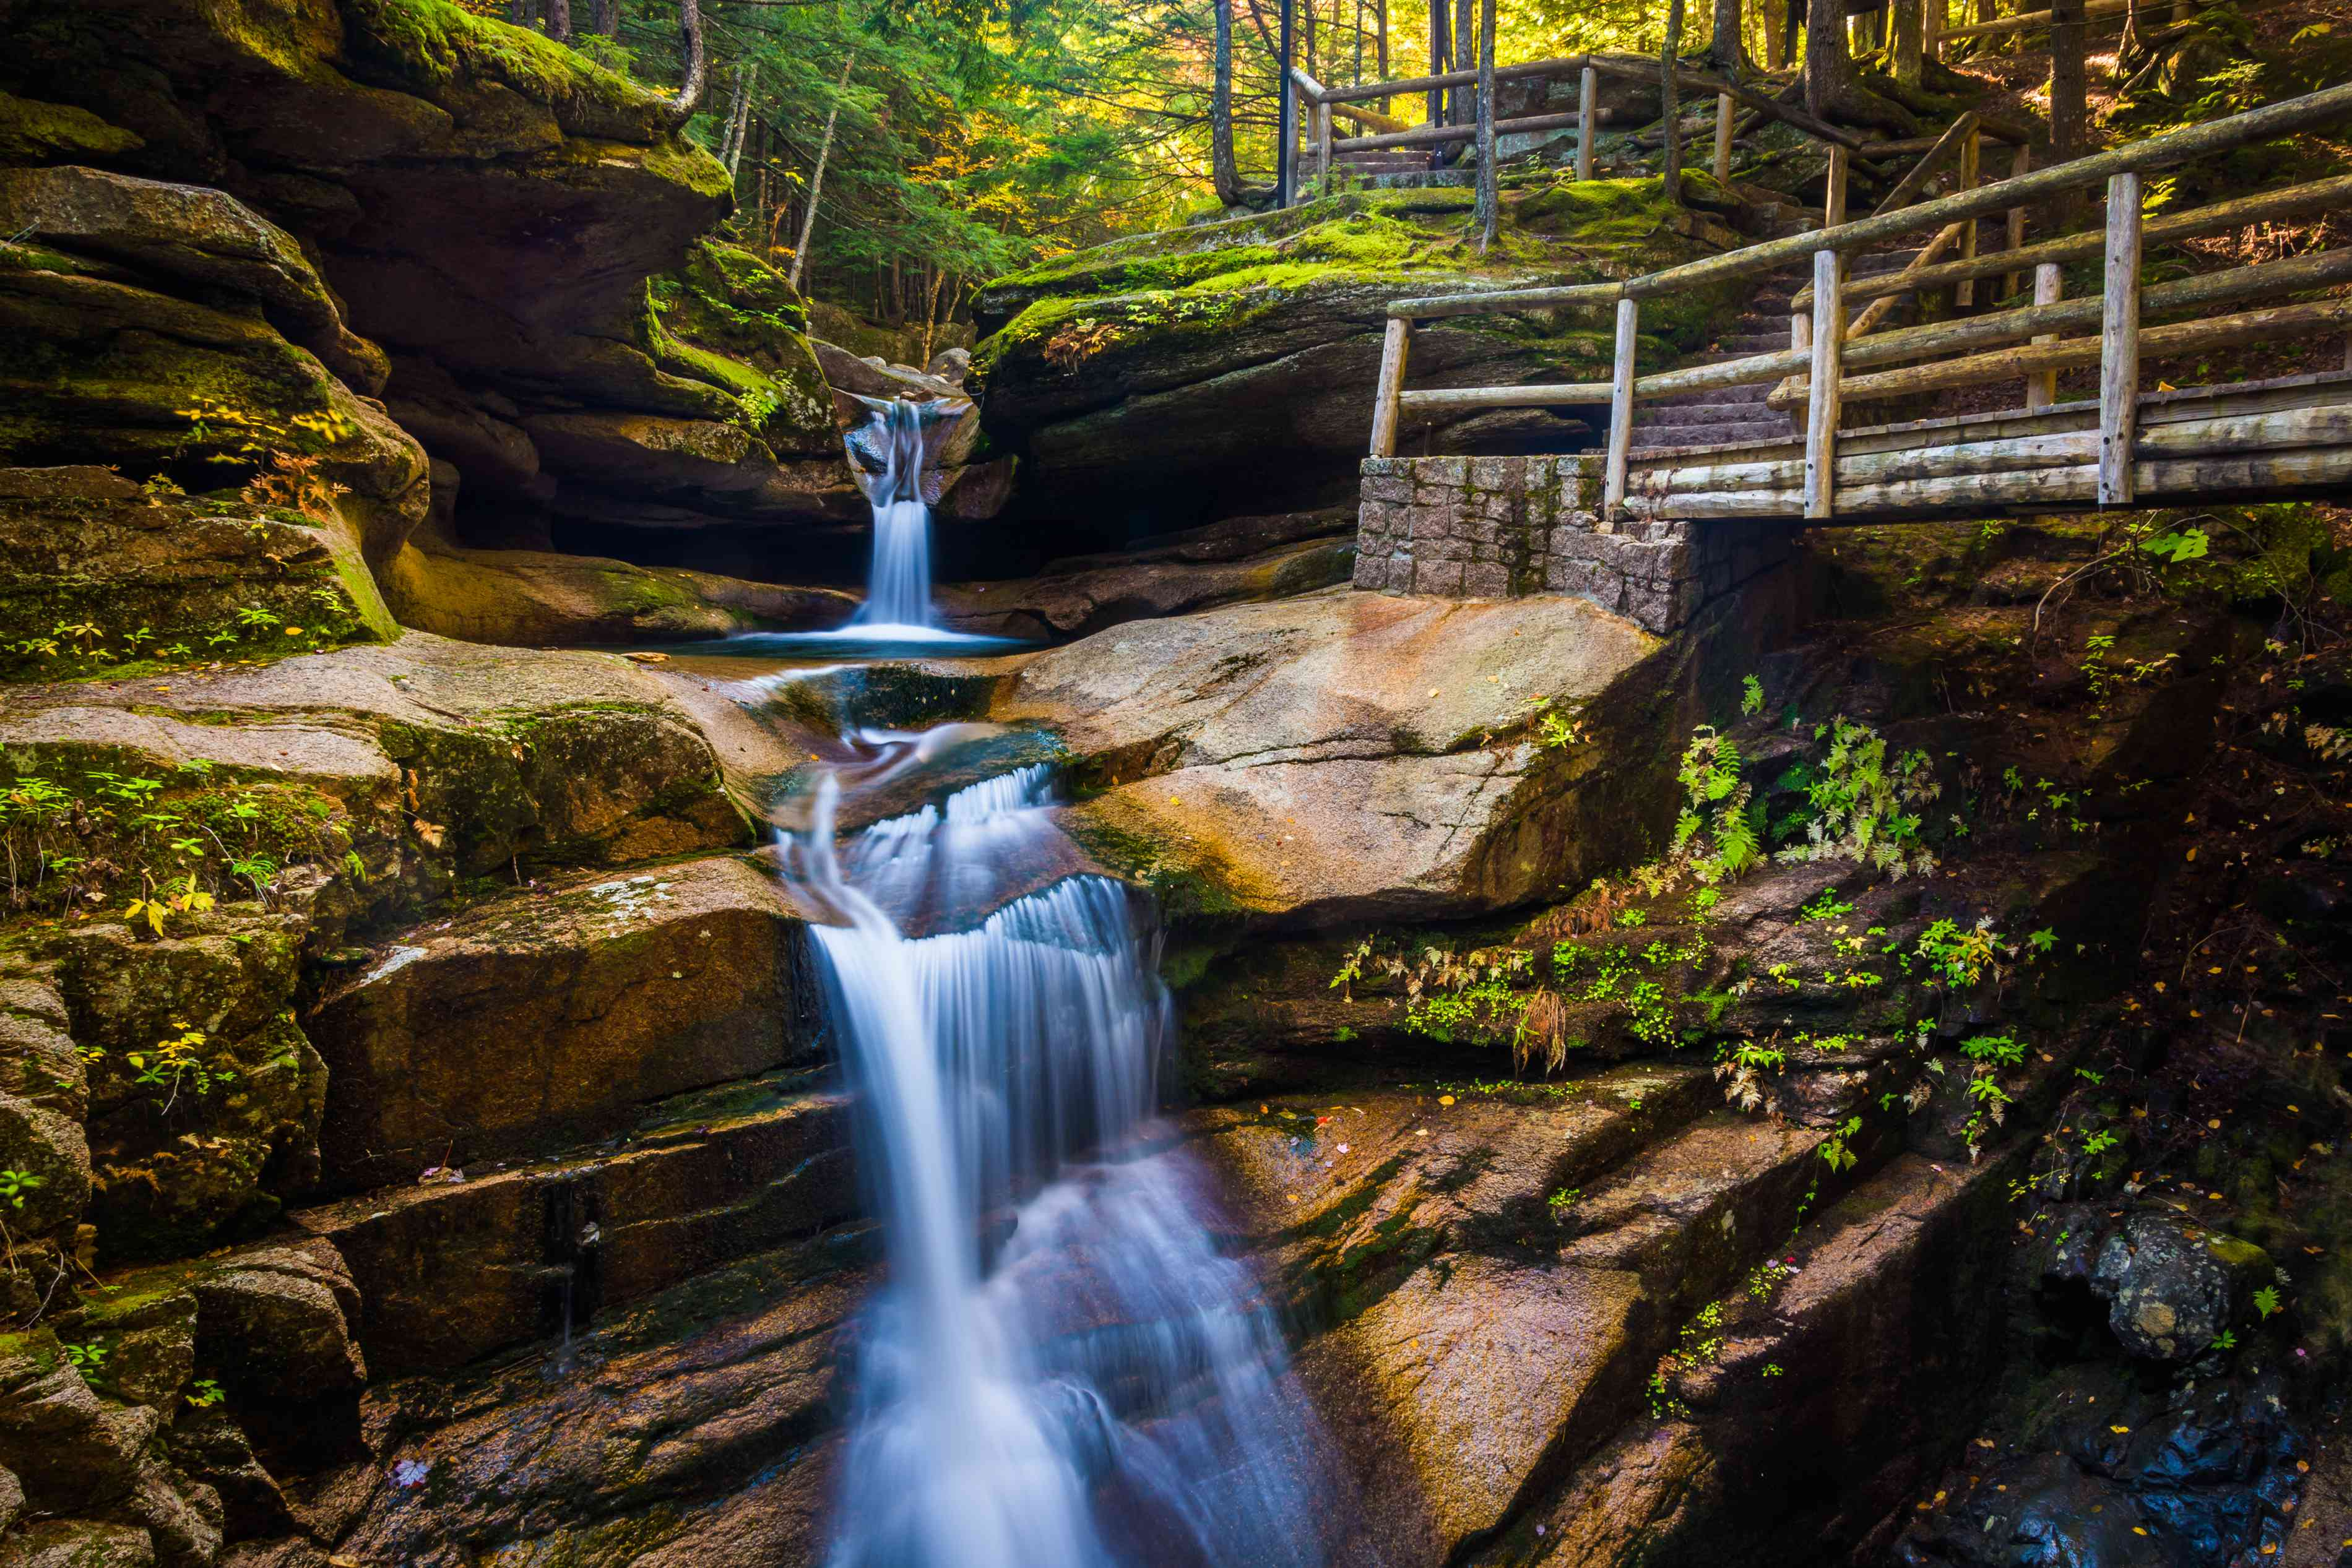 long exposure image of waterfall going down jagged rocks with a wooden trail next to it